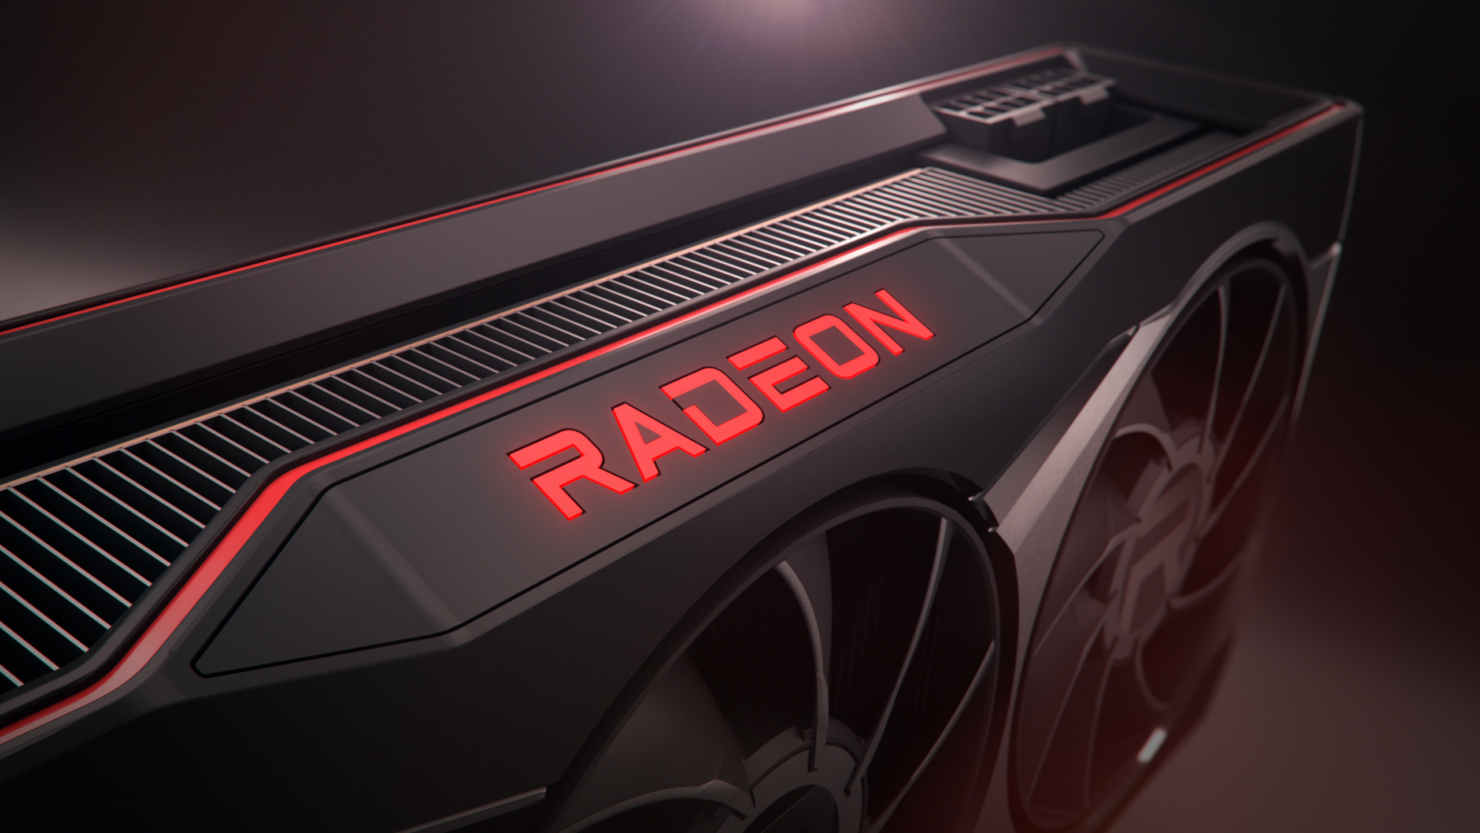 amd-radeon-rx-6700-xt-&-radeon-rx-6700-'navi-22'-graphics-cards-allegedly-launching-in-late-march,-aiming-the-sub-$500-us-segment